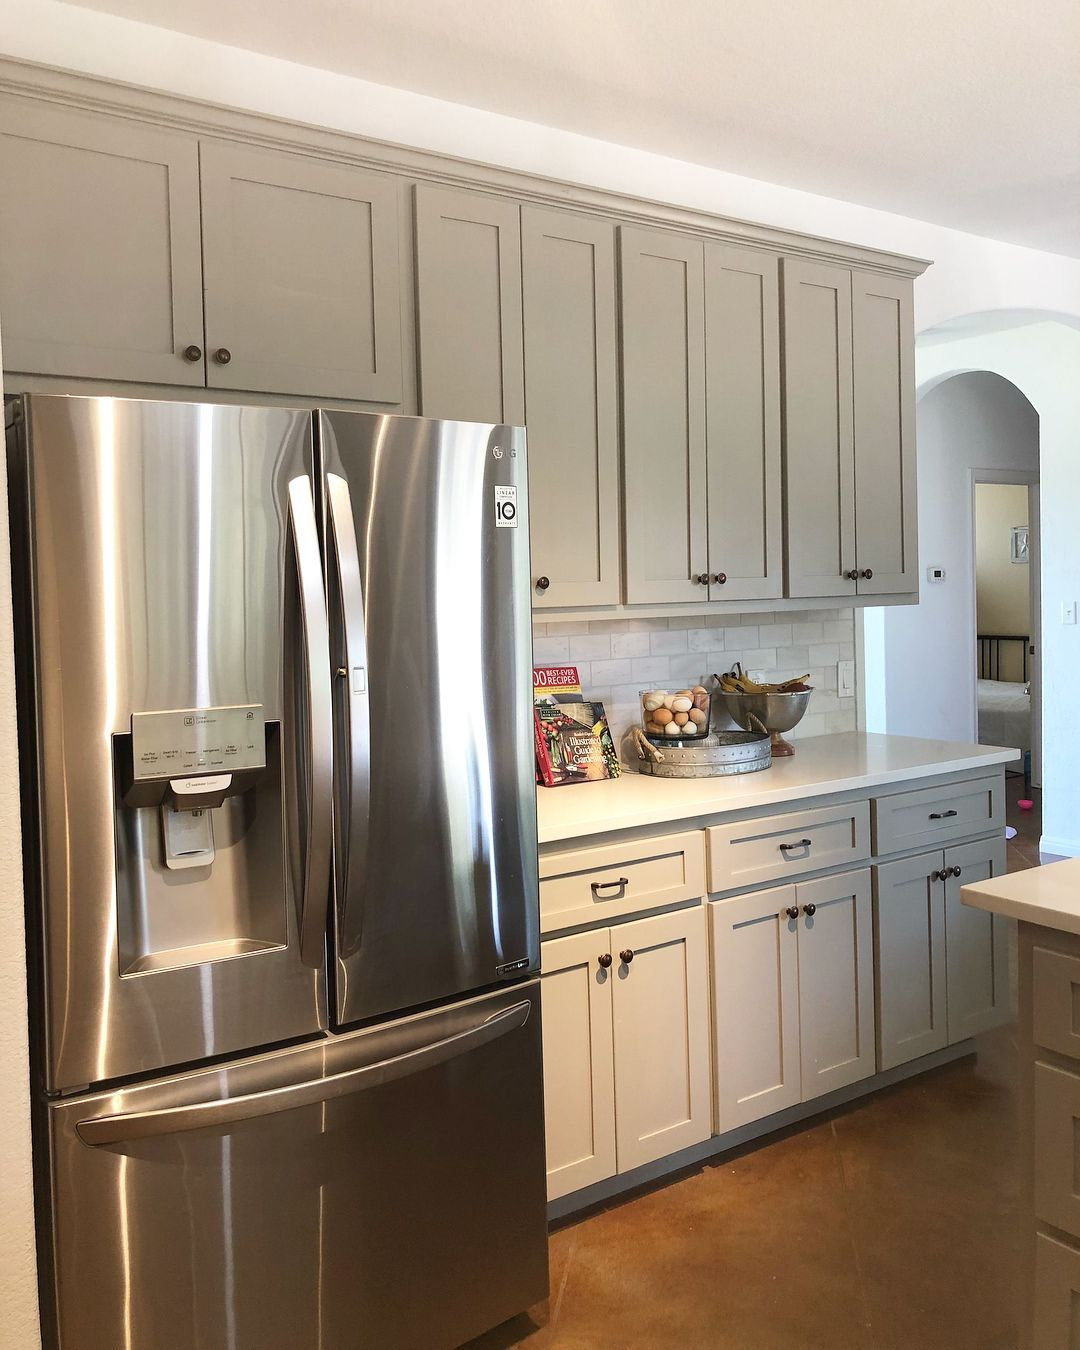 Aline County Road 481 On Instagram Sw Dorian Gray On These Cabinets And New Carrara Q In 2020 Quartz Kitchen Countertops Kitchen Design Small Grey Kitchen Cabinets